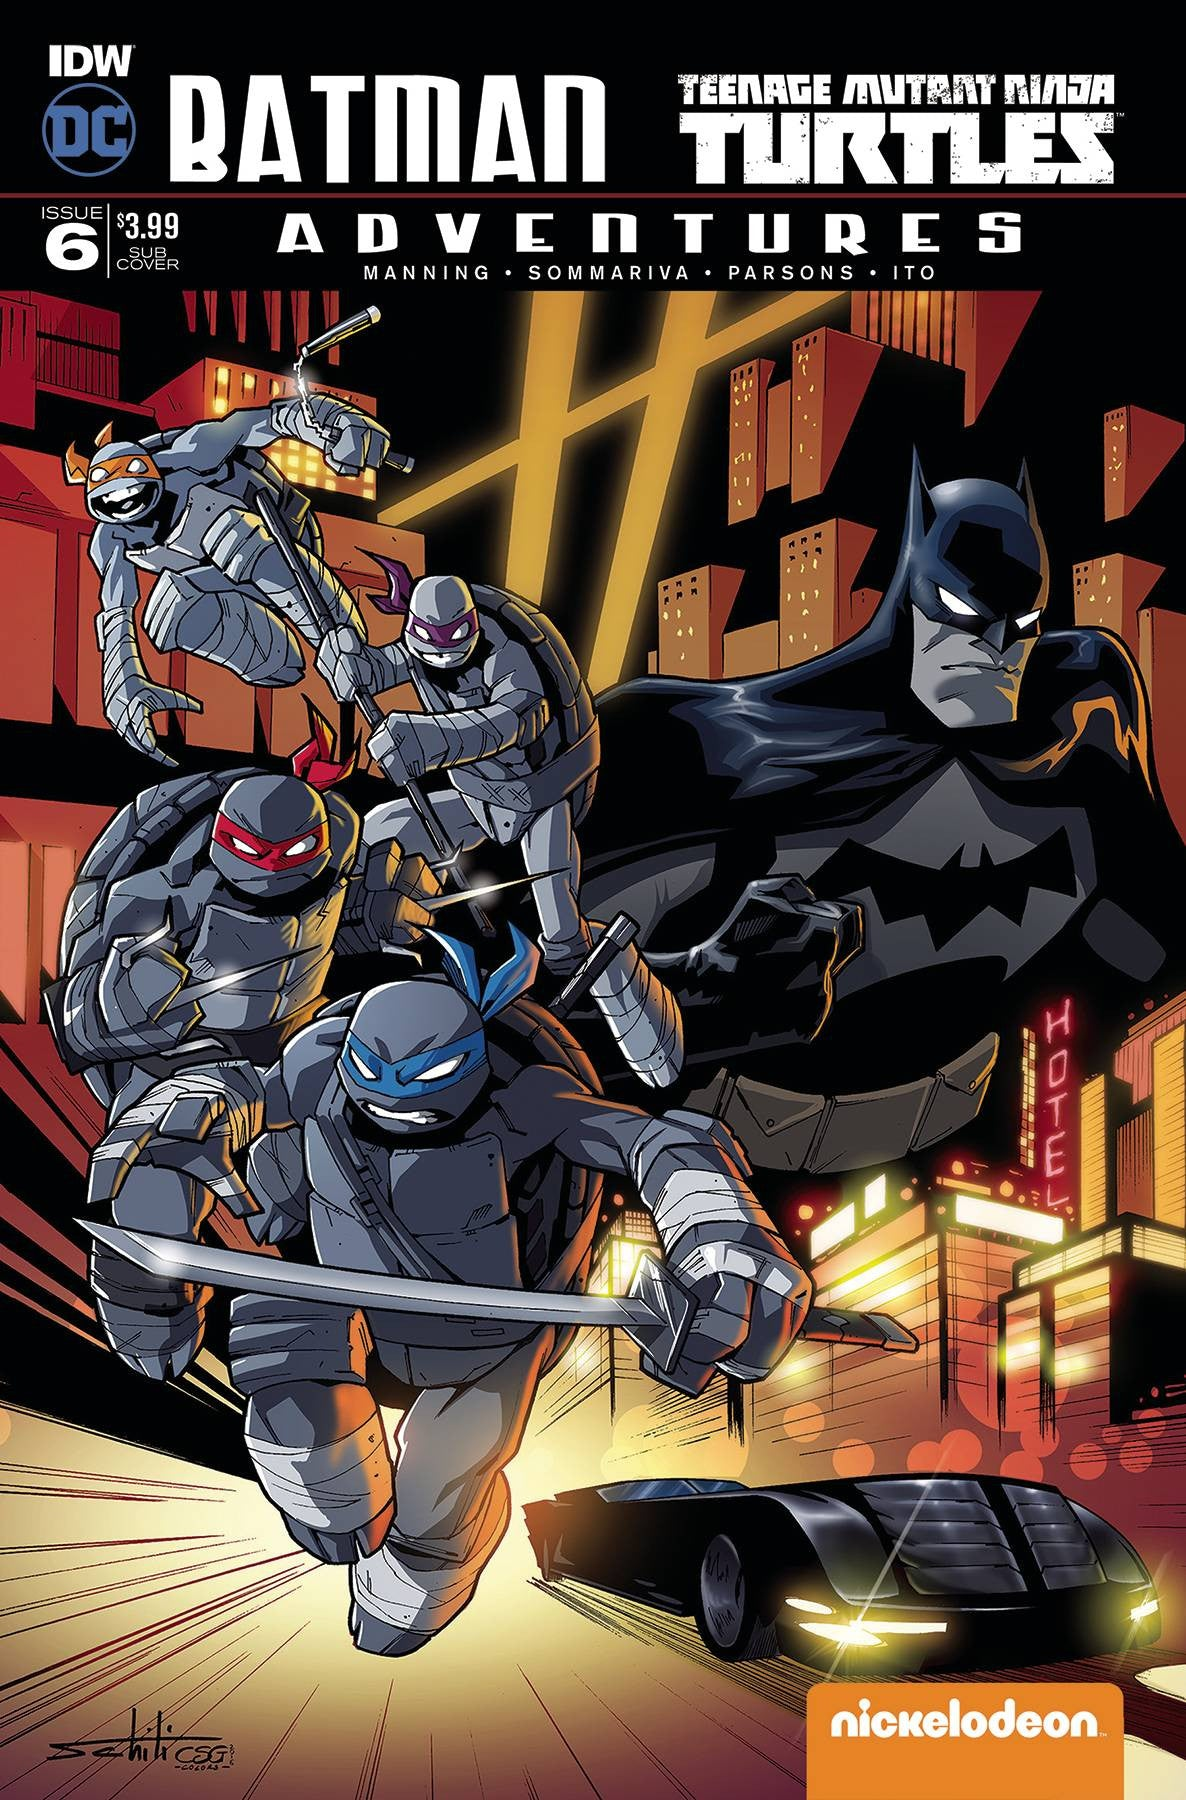 BATMAN TMNT ADVENTURES #6